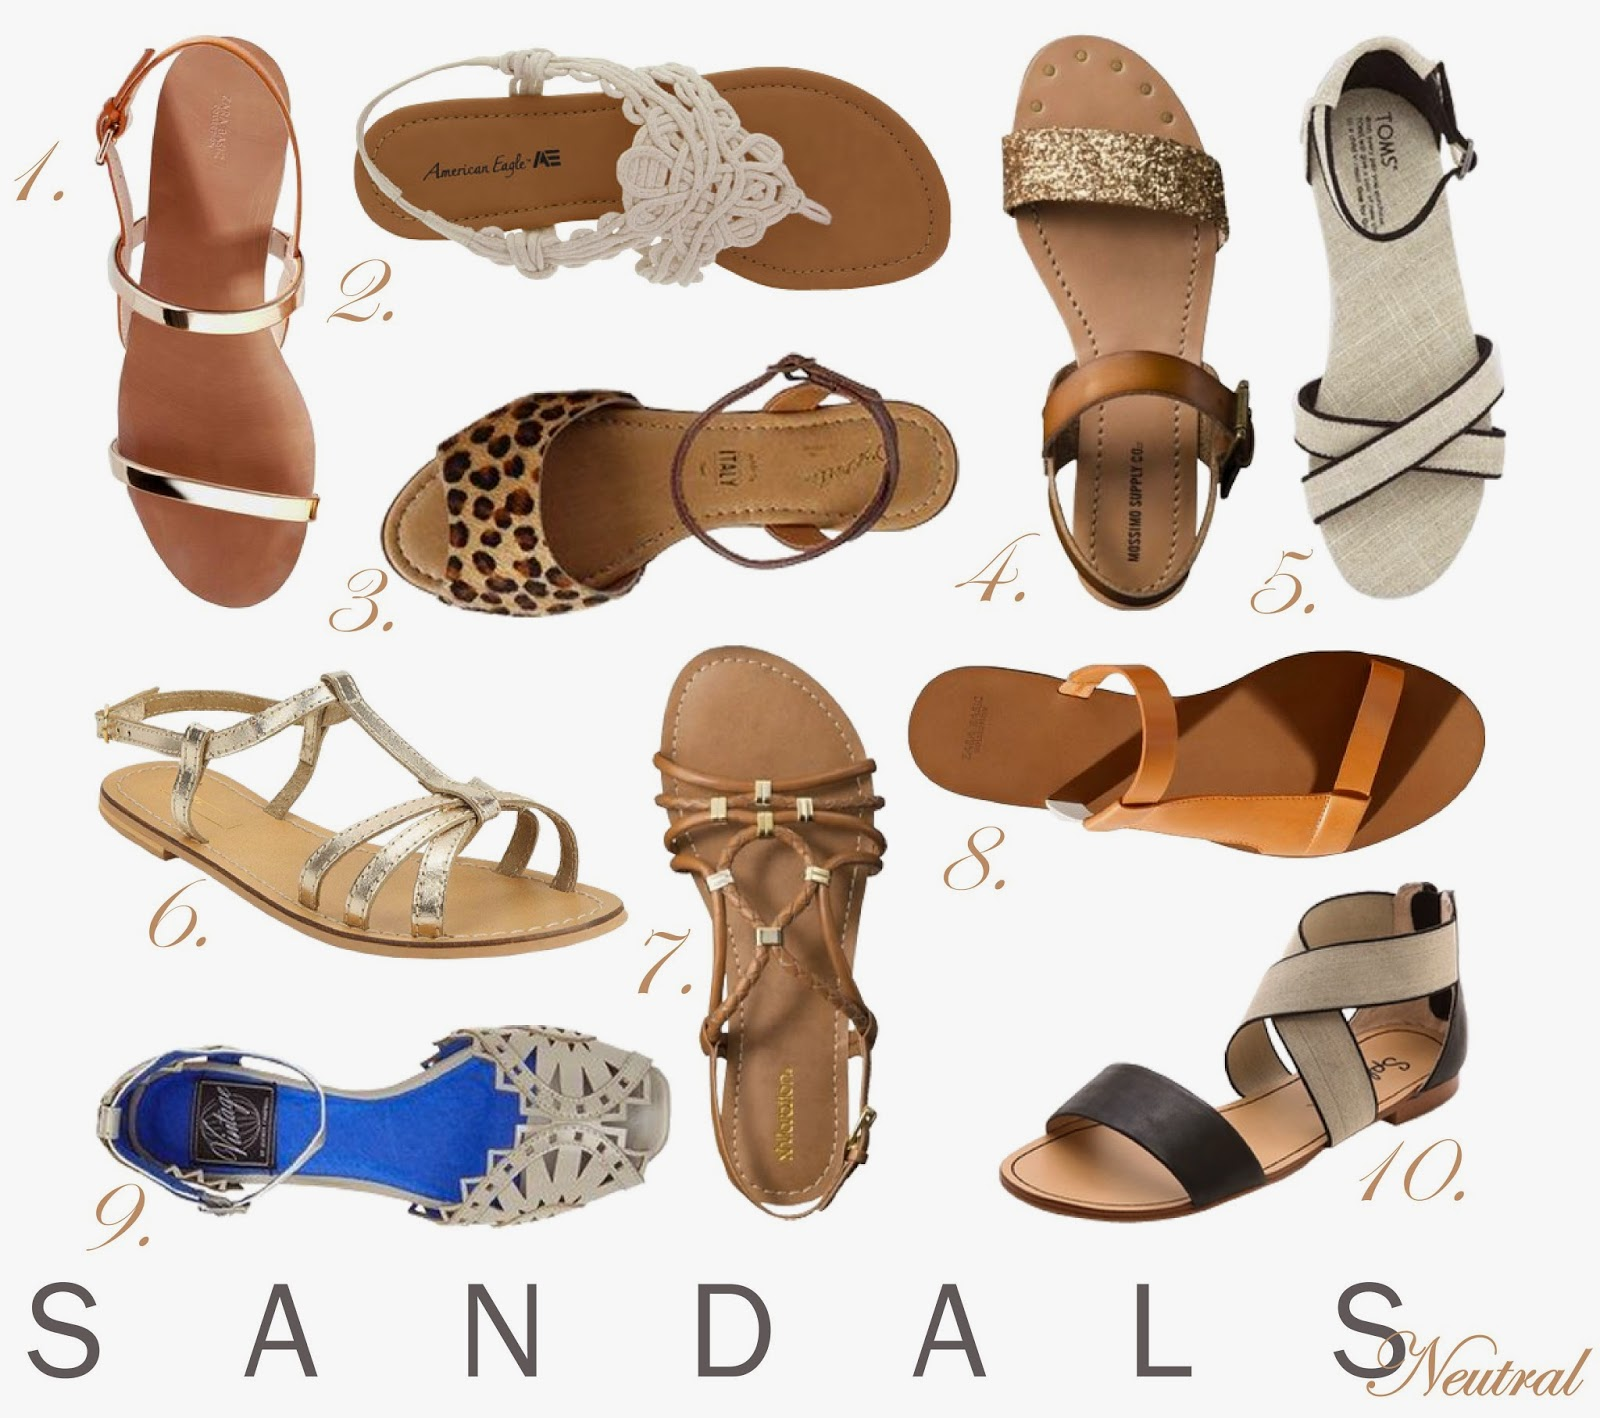 sandals-under-$100, Cute-sandals, shopping-for-sandals, buying-sandals-online, neutral-sandals, cute-neutral-sandals, leopard-sandals